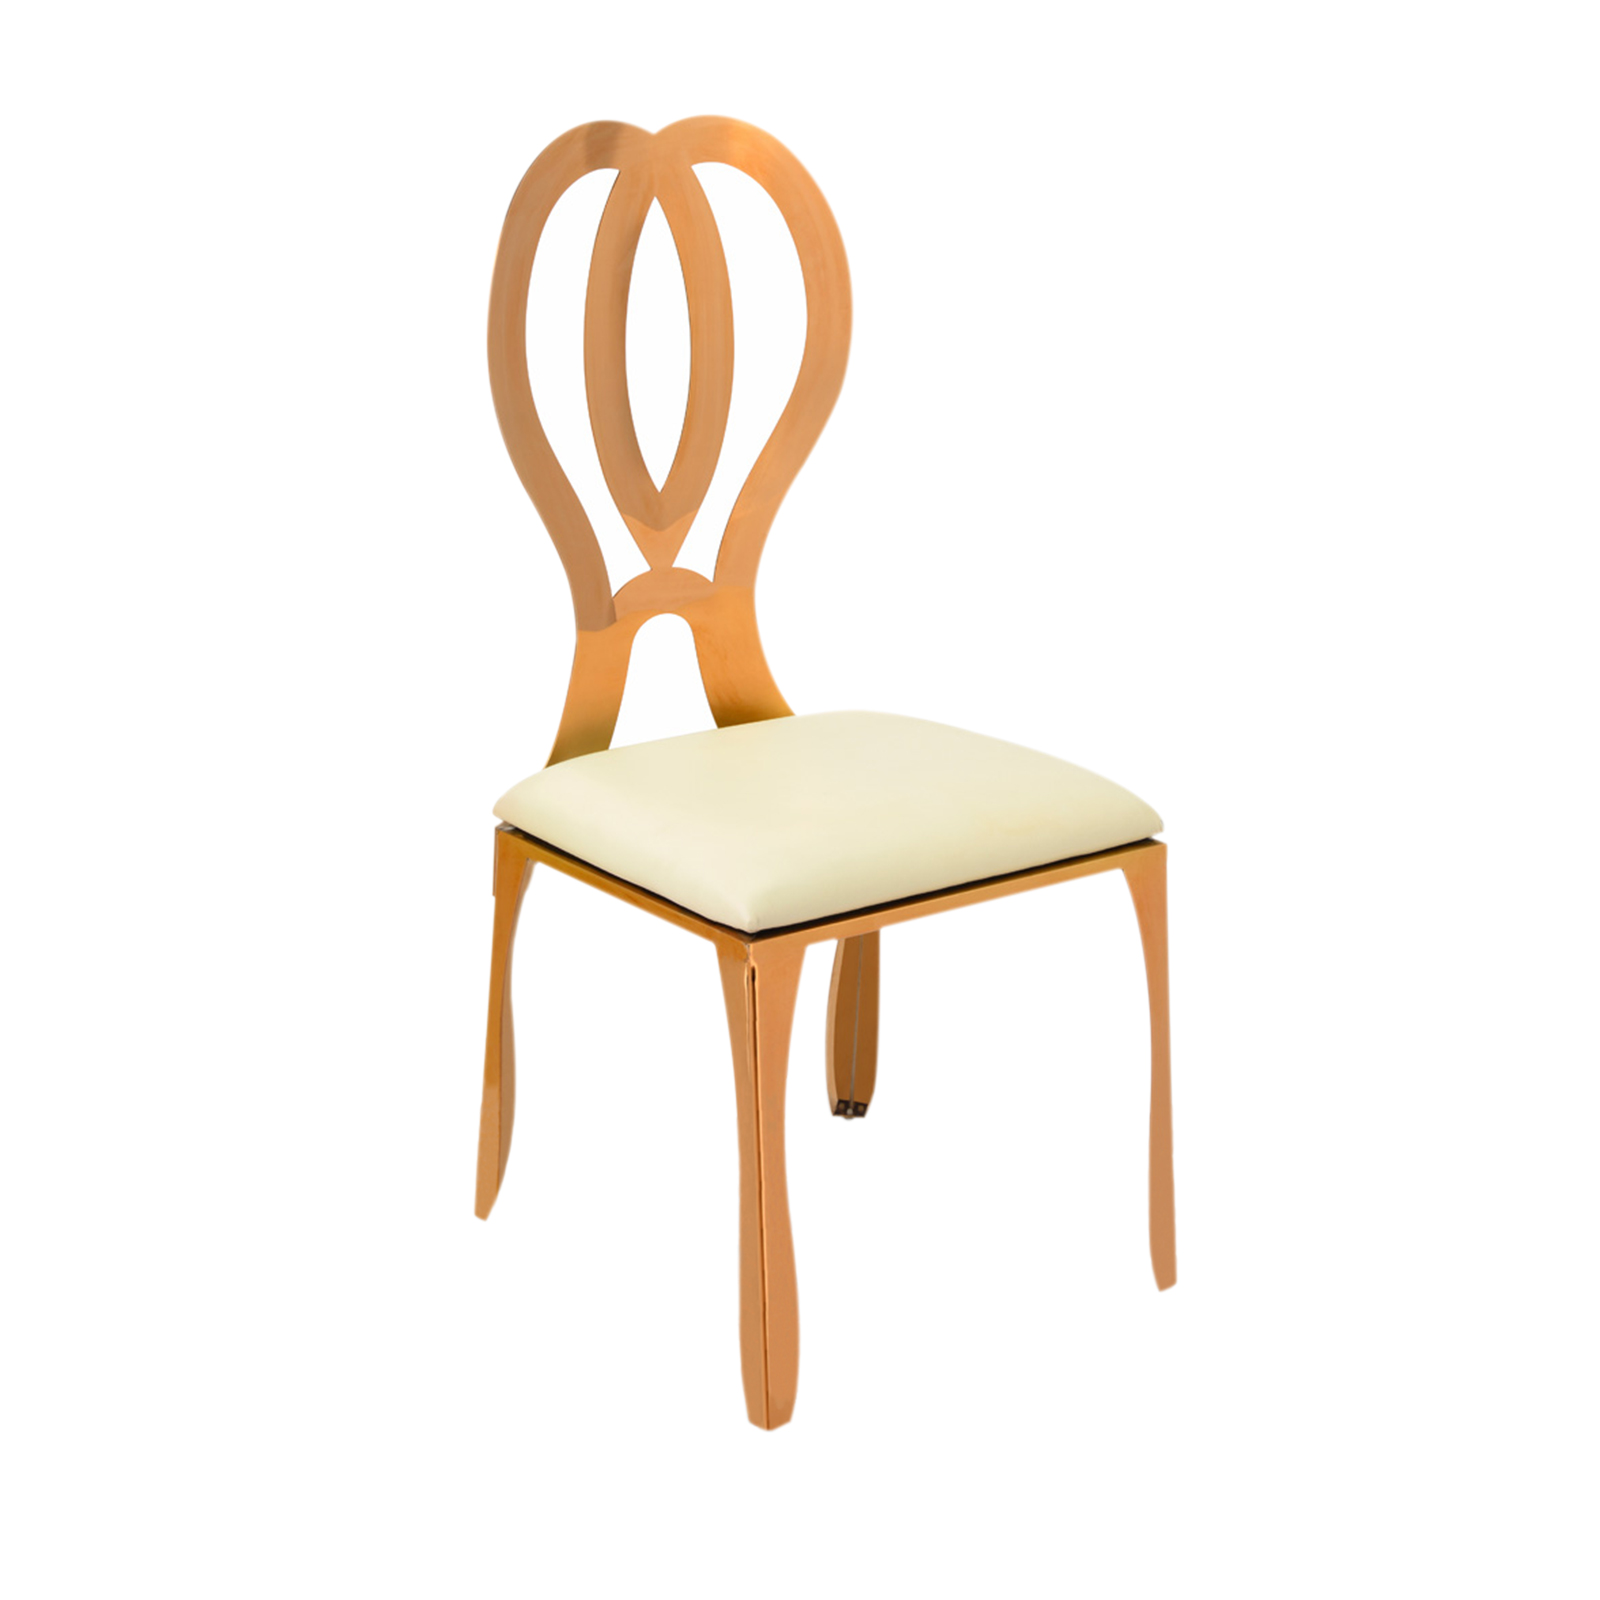 Gold Chair Rental Infinity Dining Chair Event Trade Show Furniture Rental